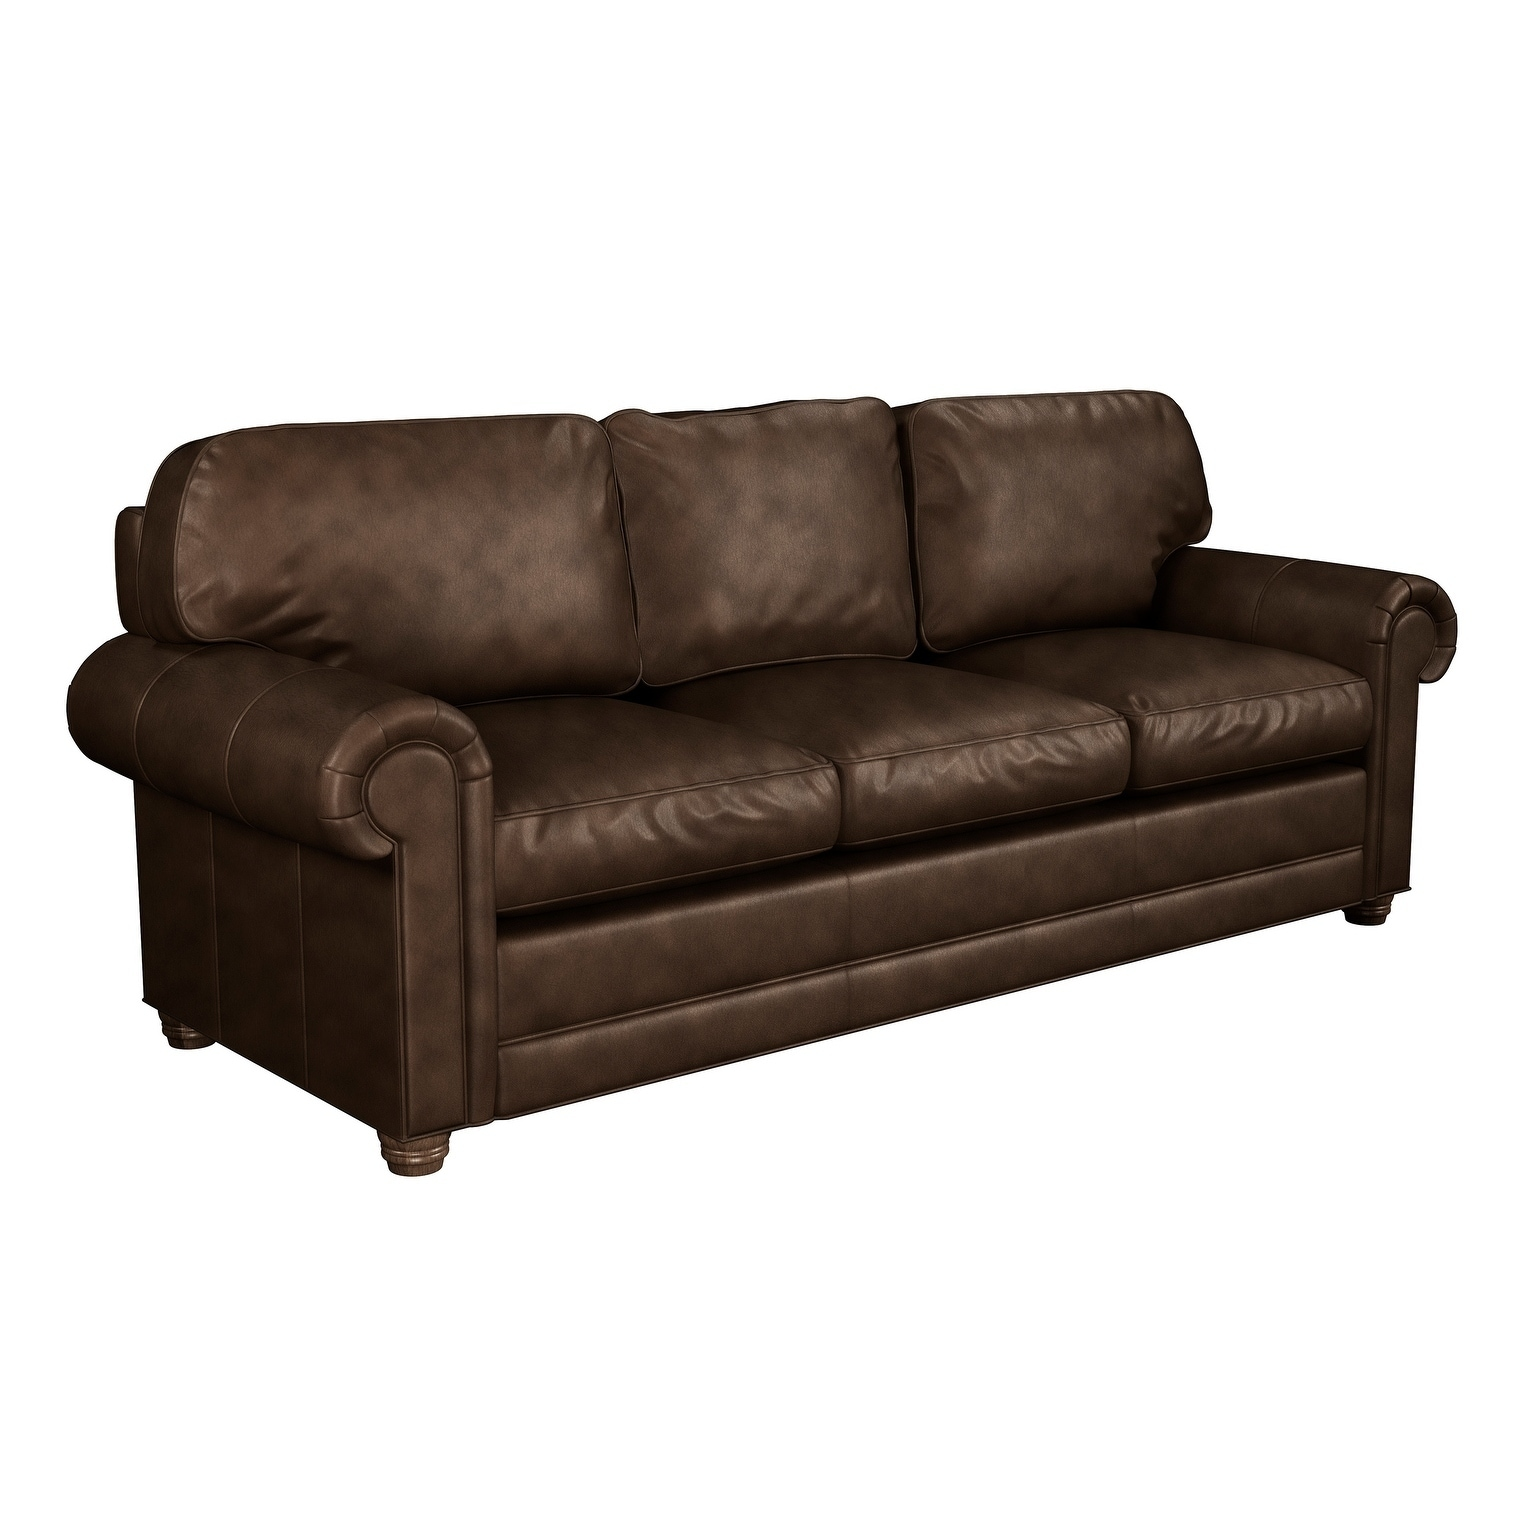 - Shop Made To Order Lansdown 100% Top Grain Leather Queen Sleeper